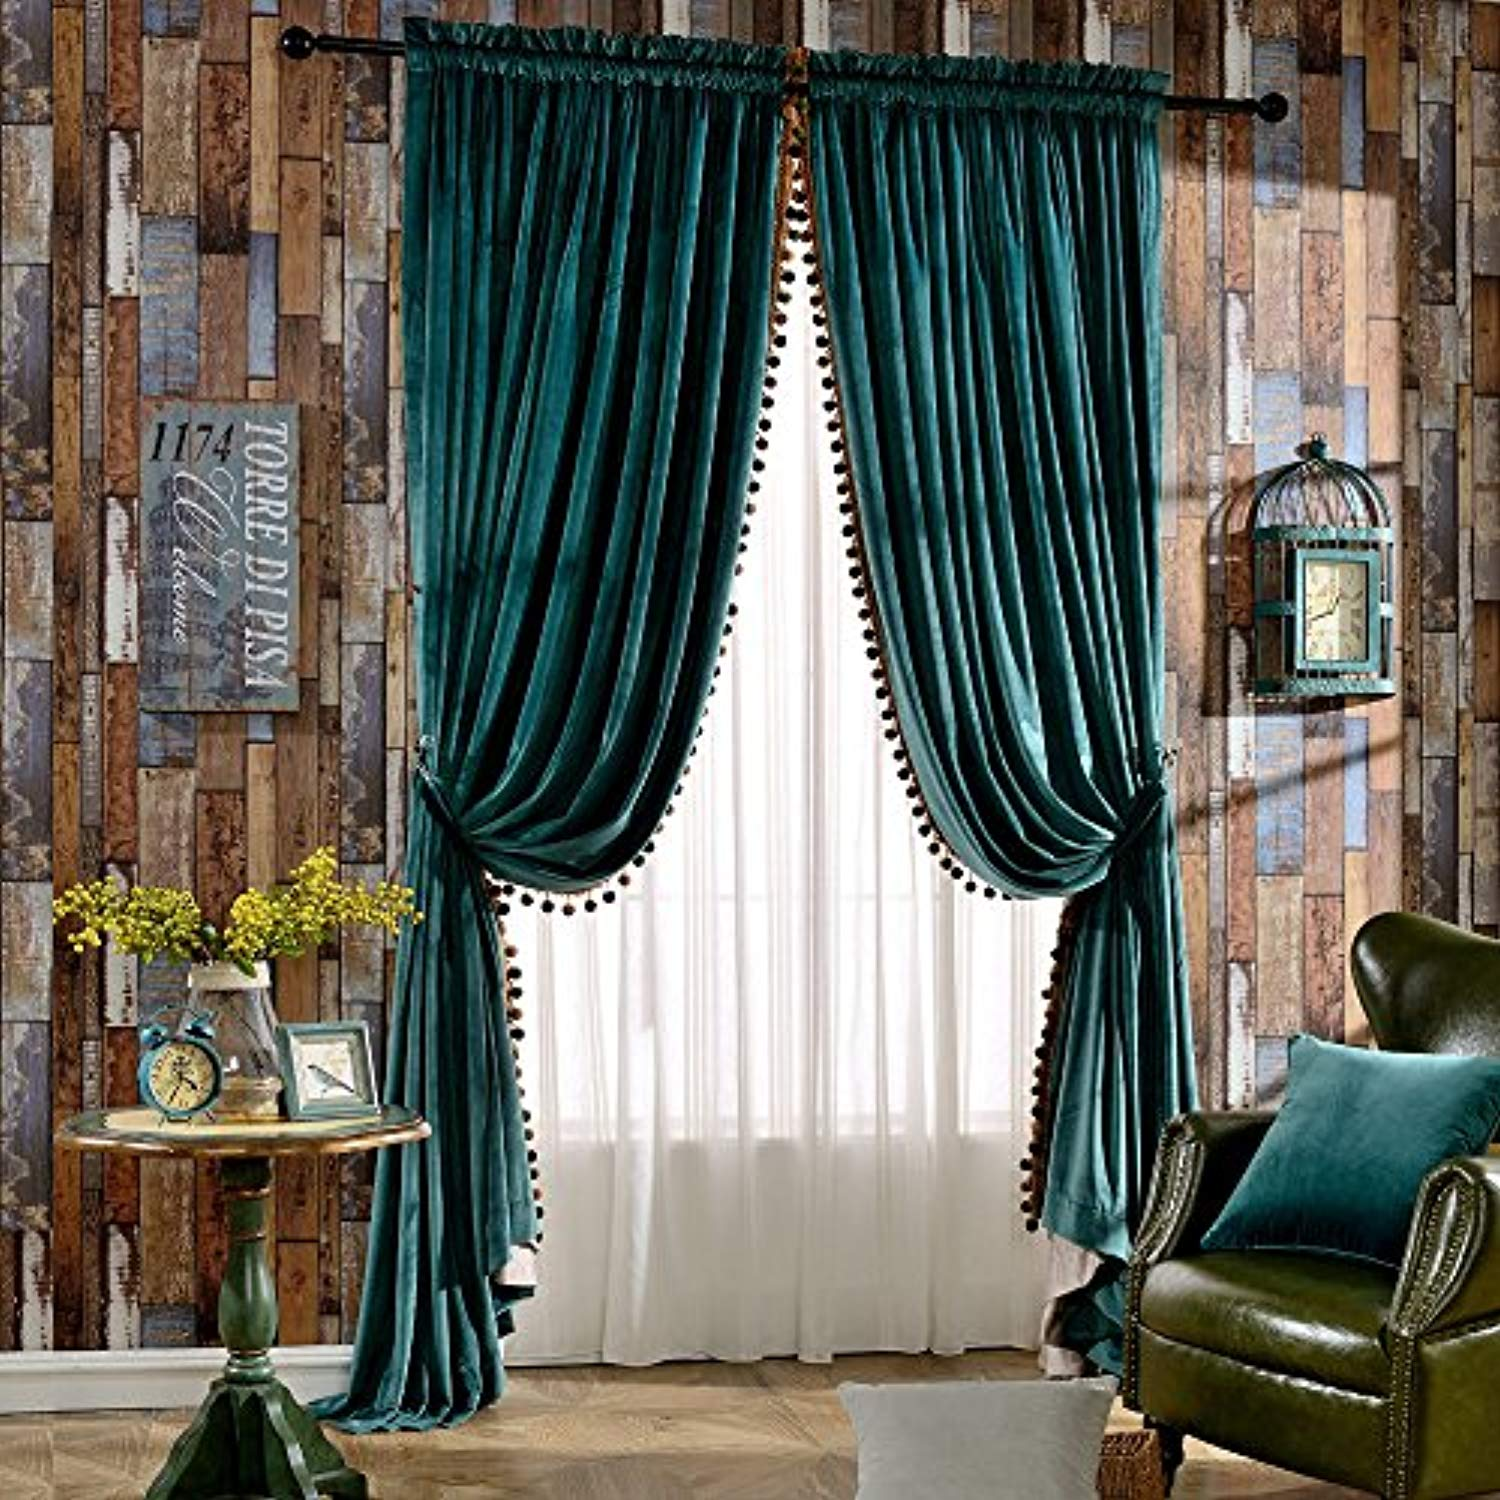 Luxury Pom Poms Velvet Curtains For Bedroom Living Room Thermal Insulated Rod Pocket Drapes 52x84 Inch